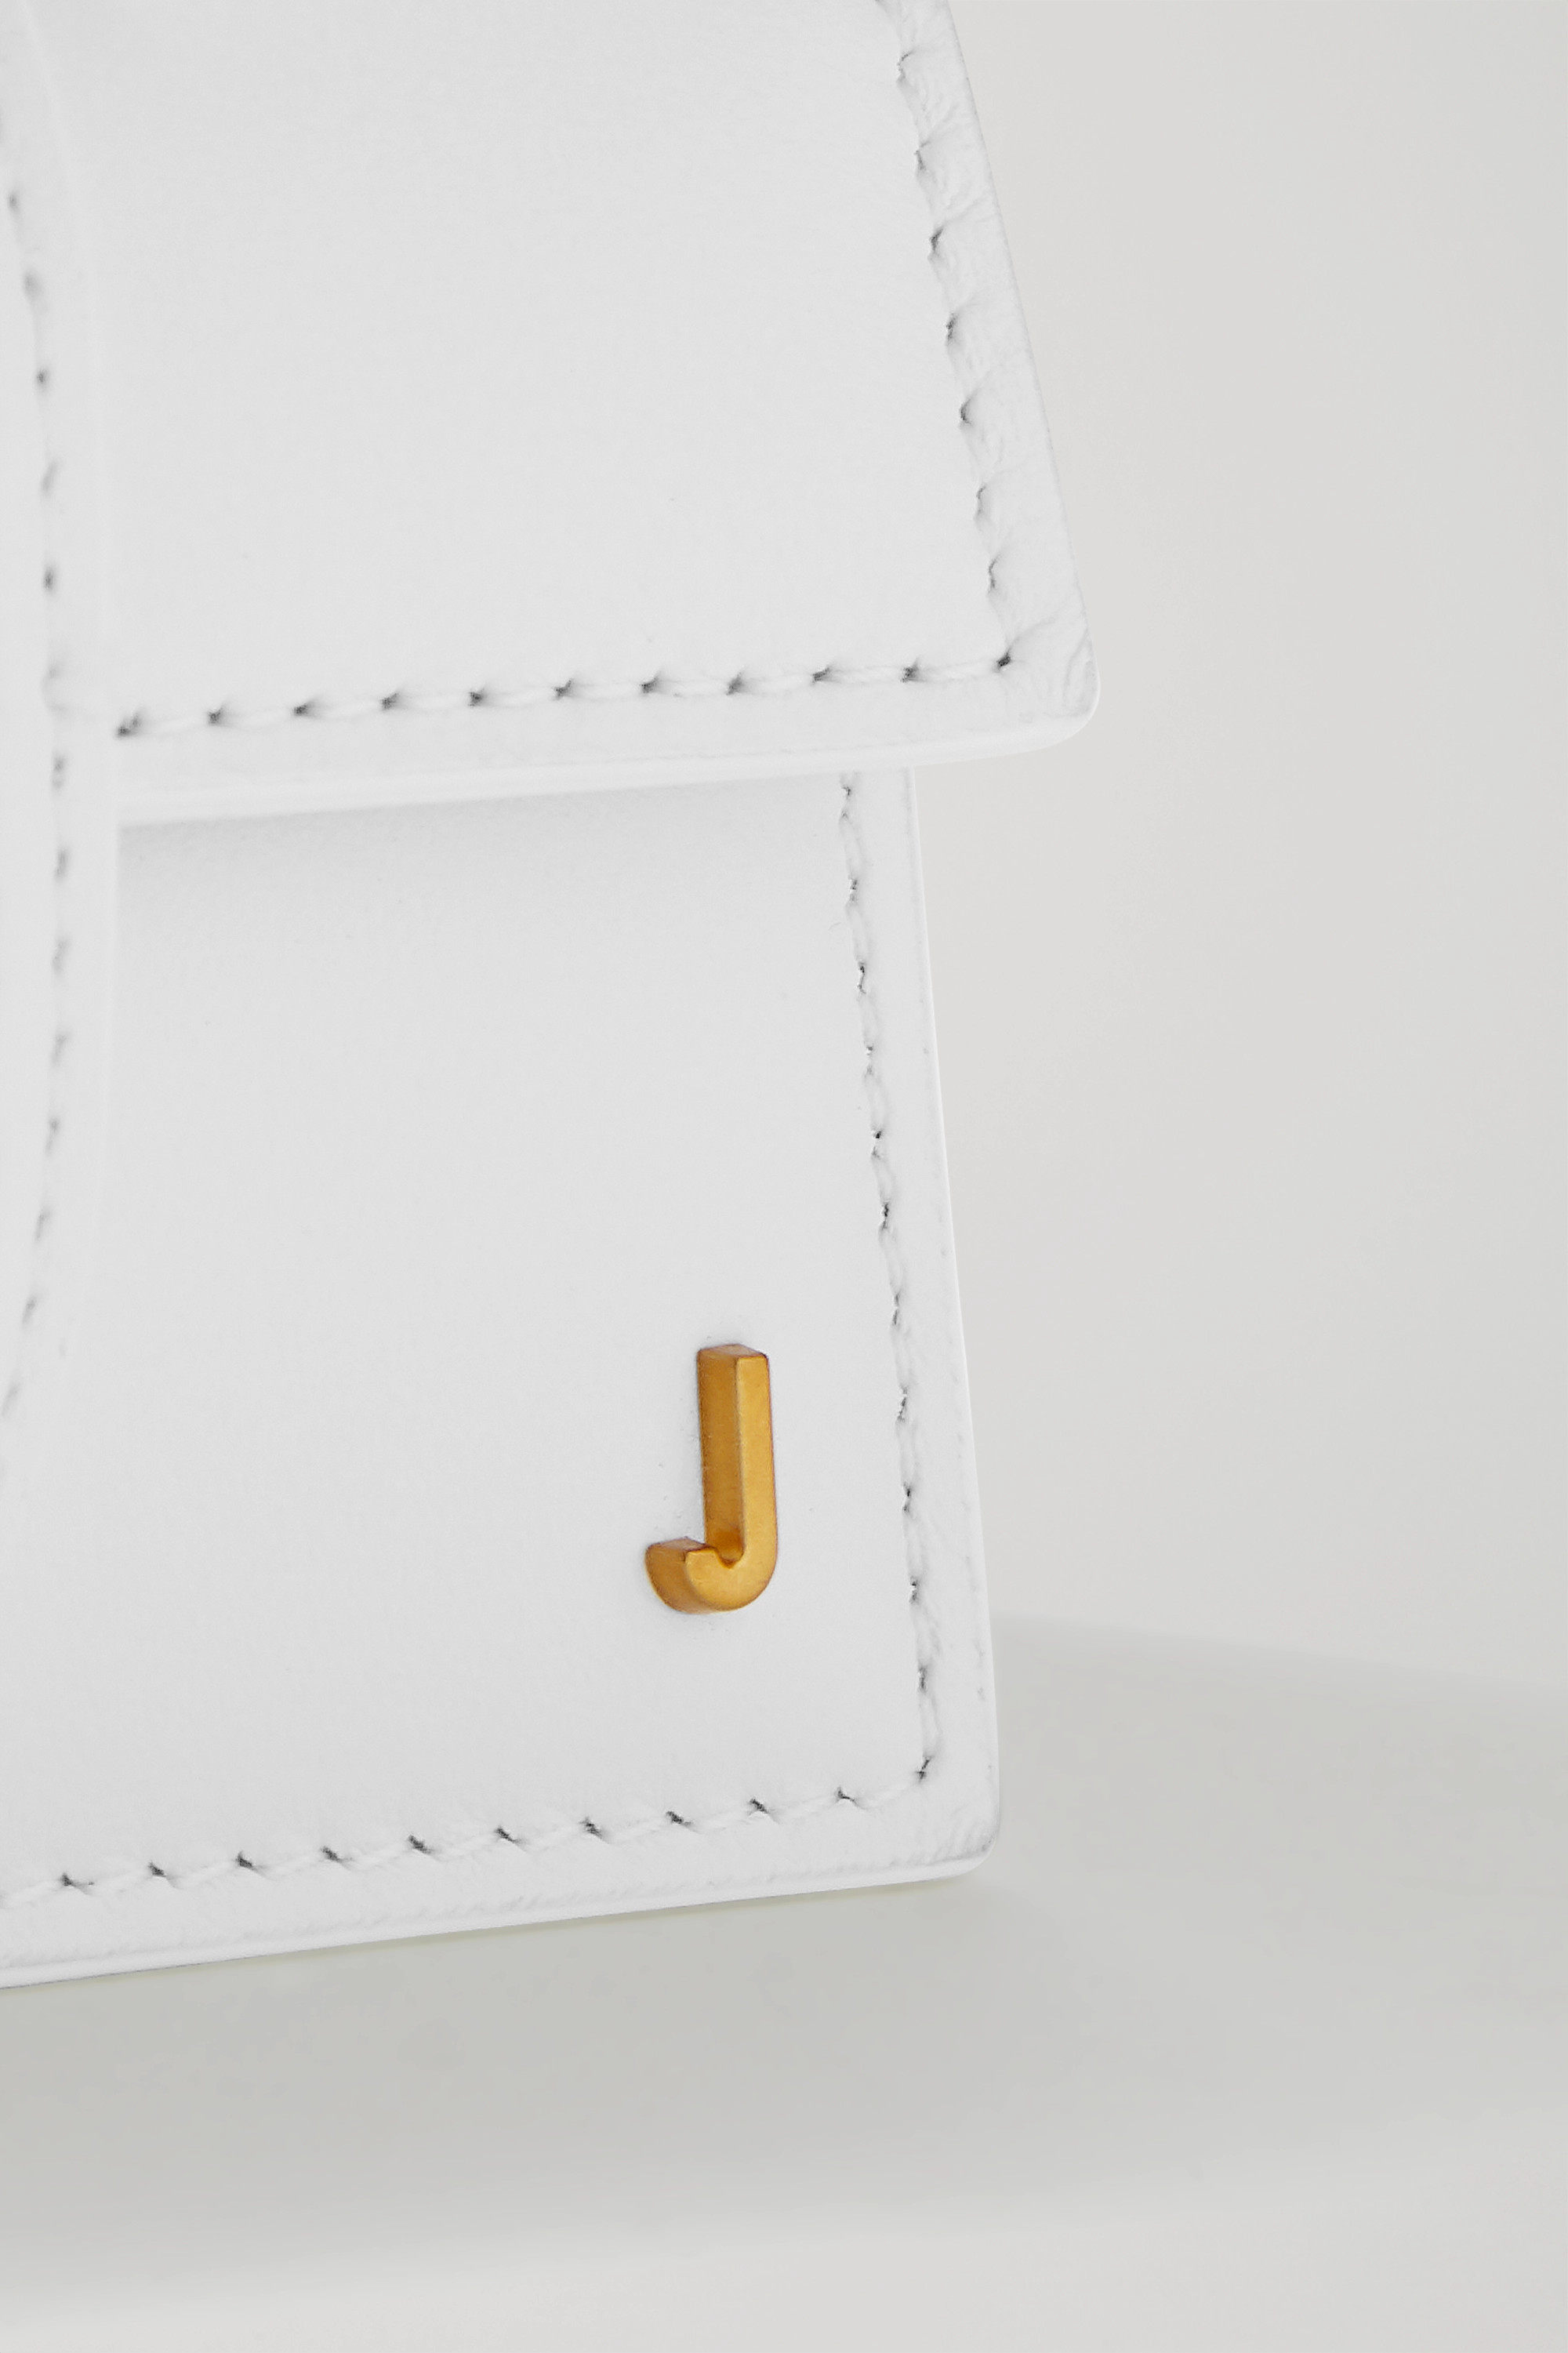 Jacquemus Le Bambino Petit leather tote